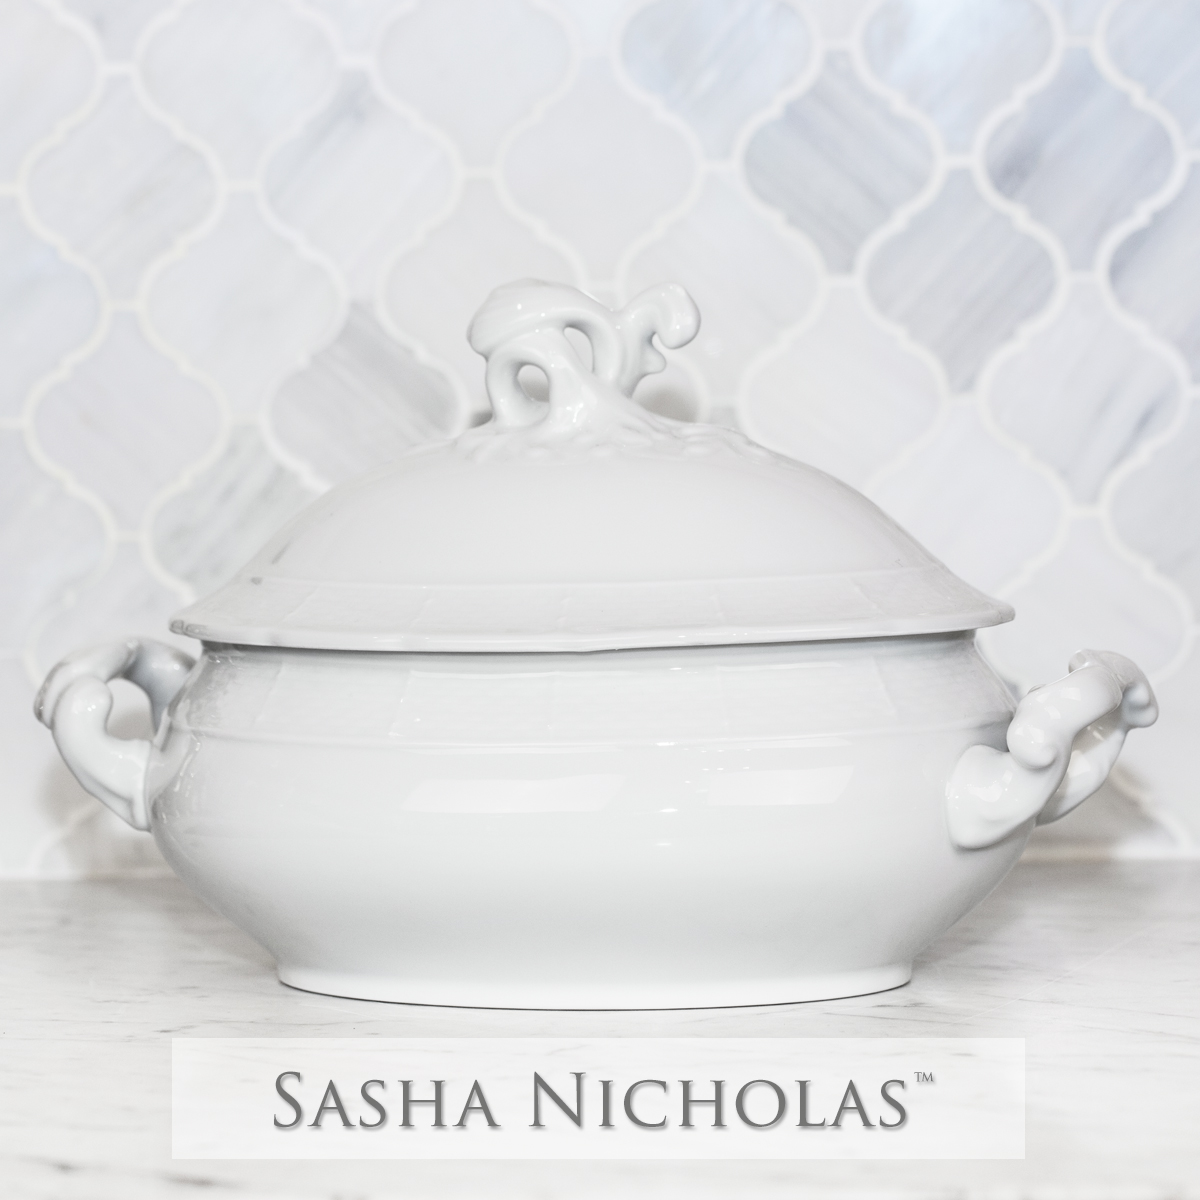 A beautiful addition to your dinnerware collection and to adorn your tablescapes with. It makes the perfect gift for your wedding registry and has the option to include an inscription on back. | Sasha Nicholas's Simply White Dinnerware